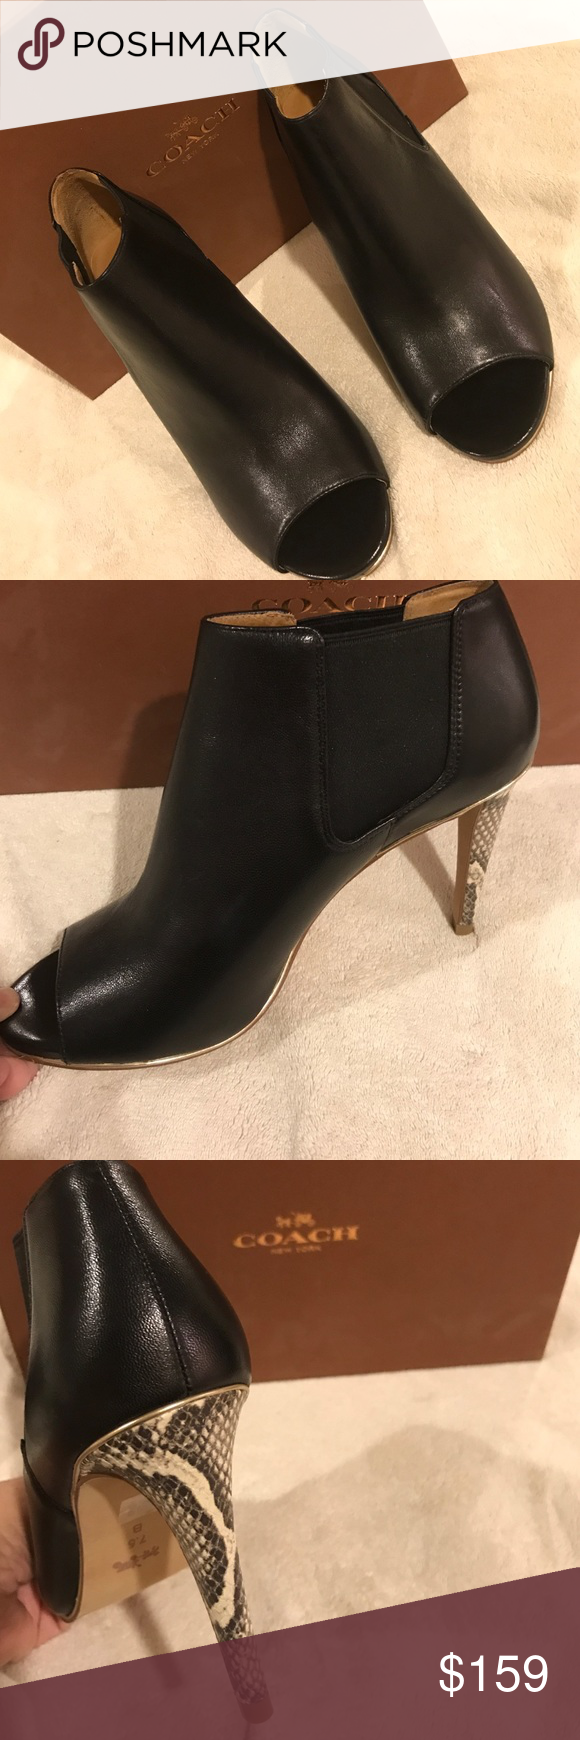 """COACH NIB ADRIANNA ankle bootie This Coach Adrianna ankle bootie is black leather, has a peep-toe and is set on a slim, snake-embossed 4"""" heel. Goes from desk to dance floor with its flirty silhouette and comfy elastic side gores. Coach Shoes Ankle Boots & Booties"""